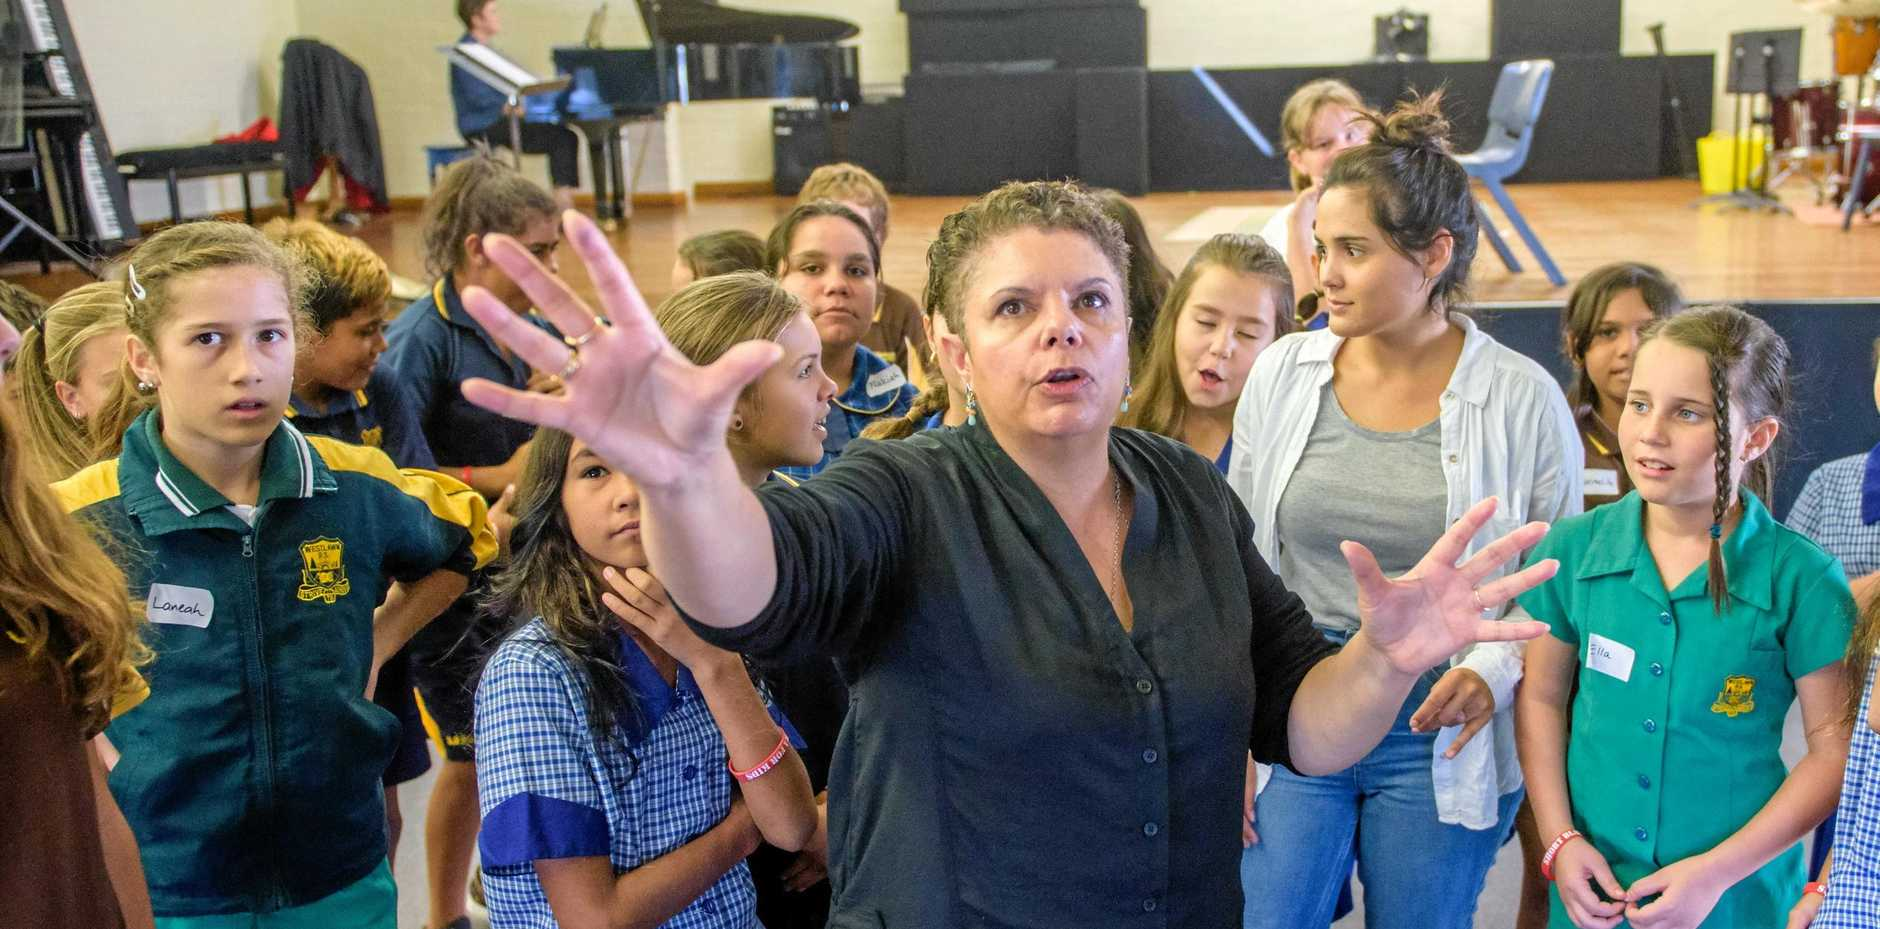 ON SONG: Opera singer Deborah Cheetham tutors local indigenous students in singing as part of a week-long residency at the Clarence Valley Conservatorium in 2016. Ms Cheetham has been critical of the Australian national anthem, refusing to sing it at a grand final because of its absence of indigenous recognition.